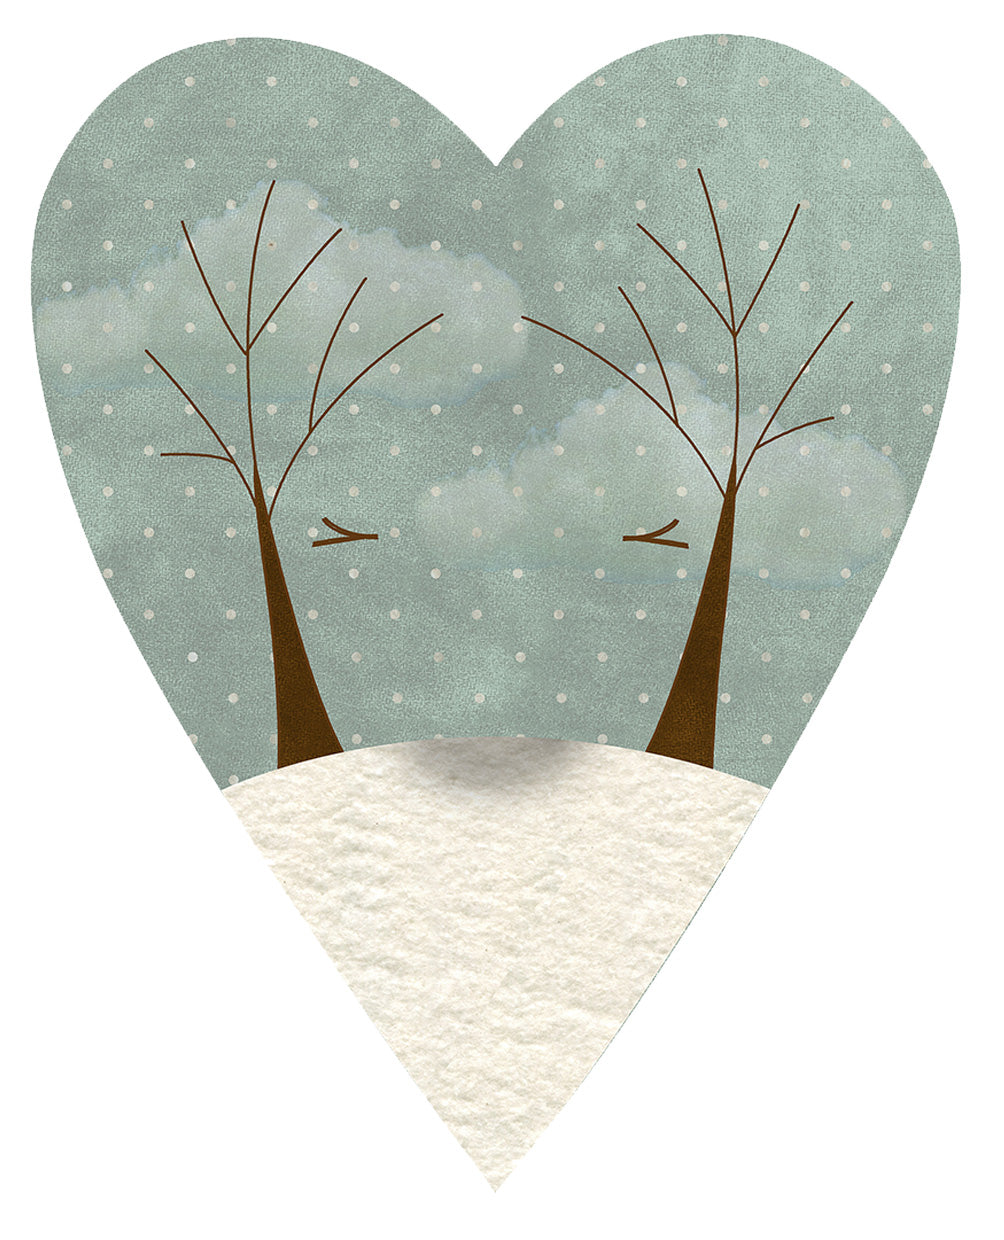 F2013 Seasons of the Heart (Winter) Preprinted Fabric